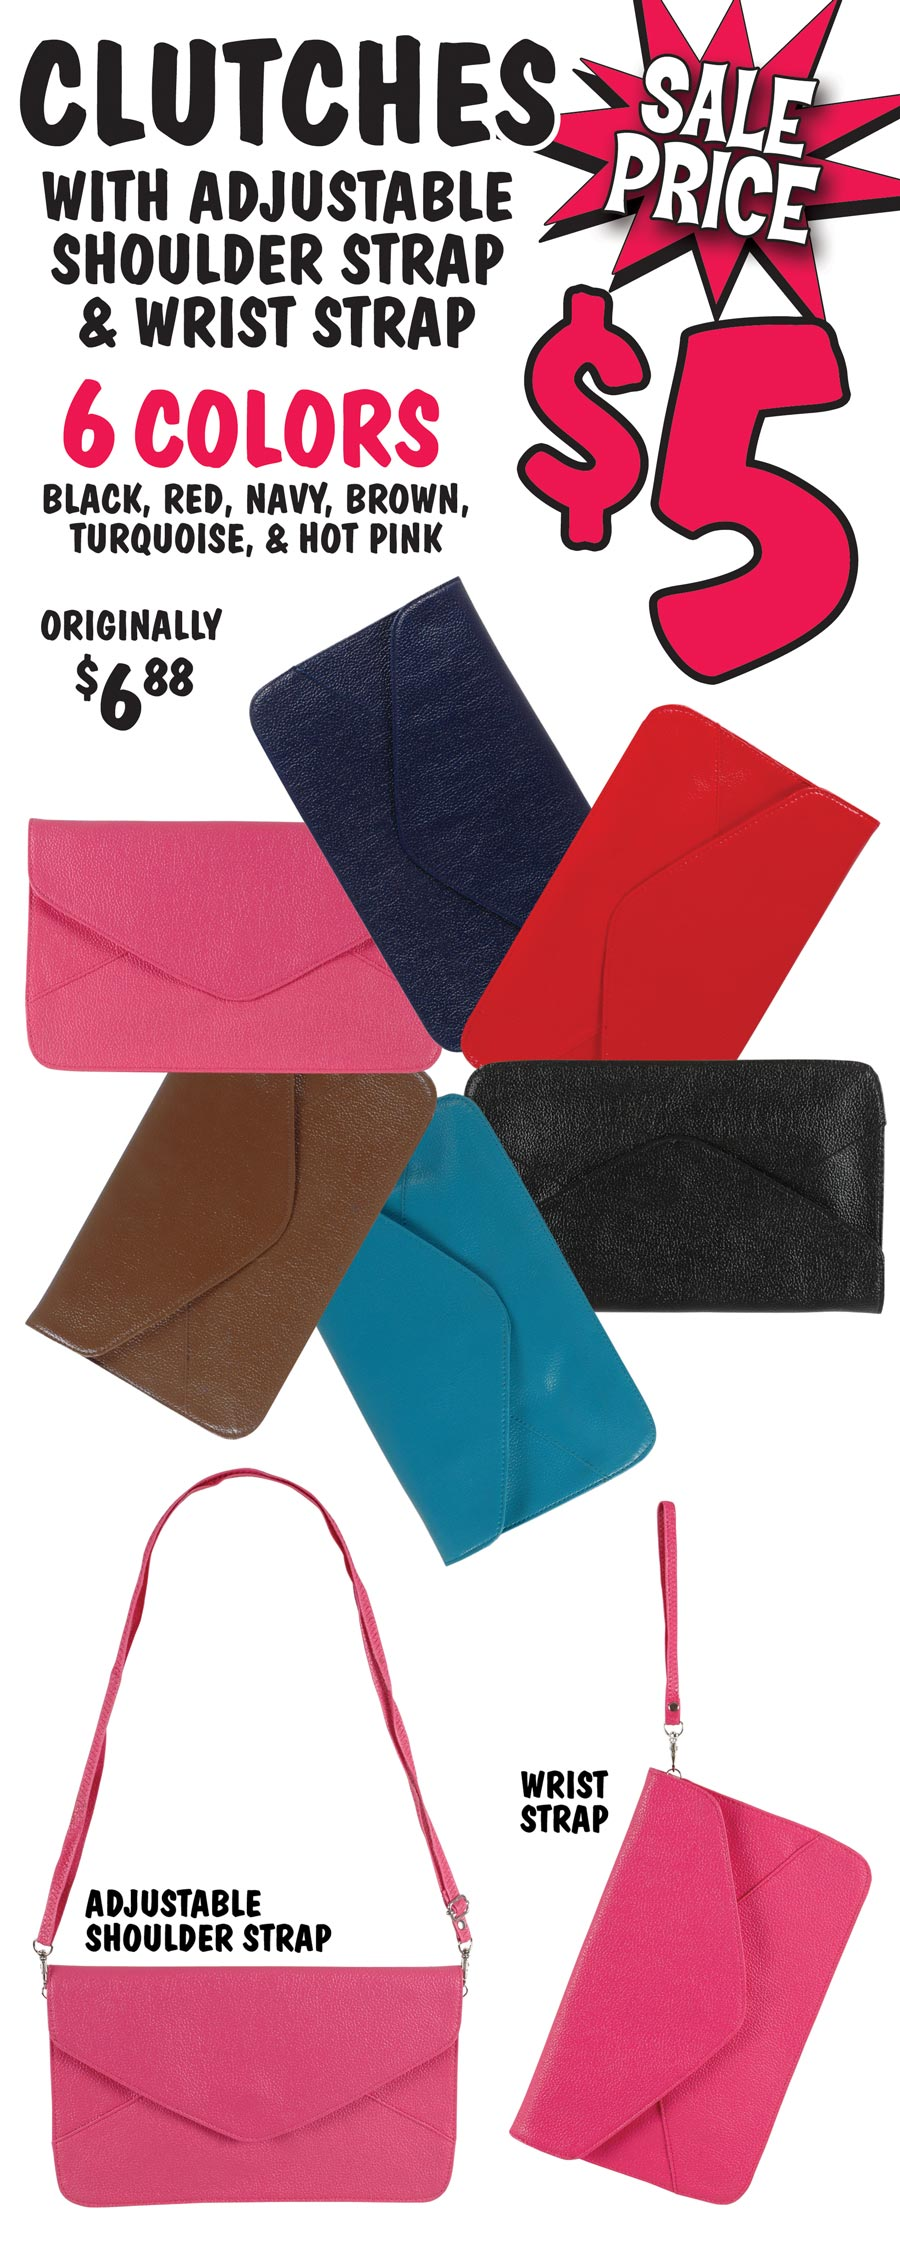 Clutch Bags On Sale $5 - 6 Colors